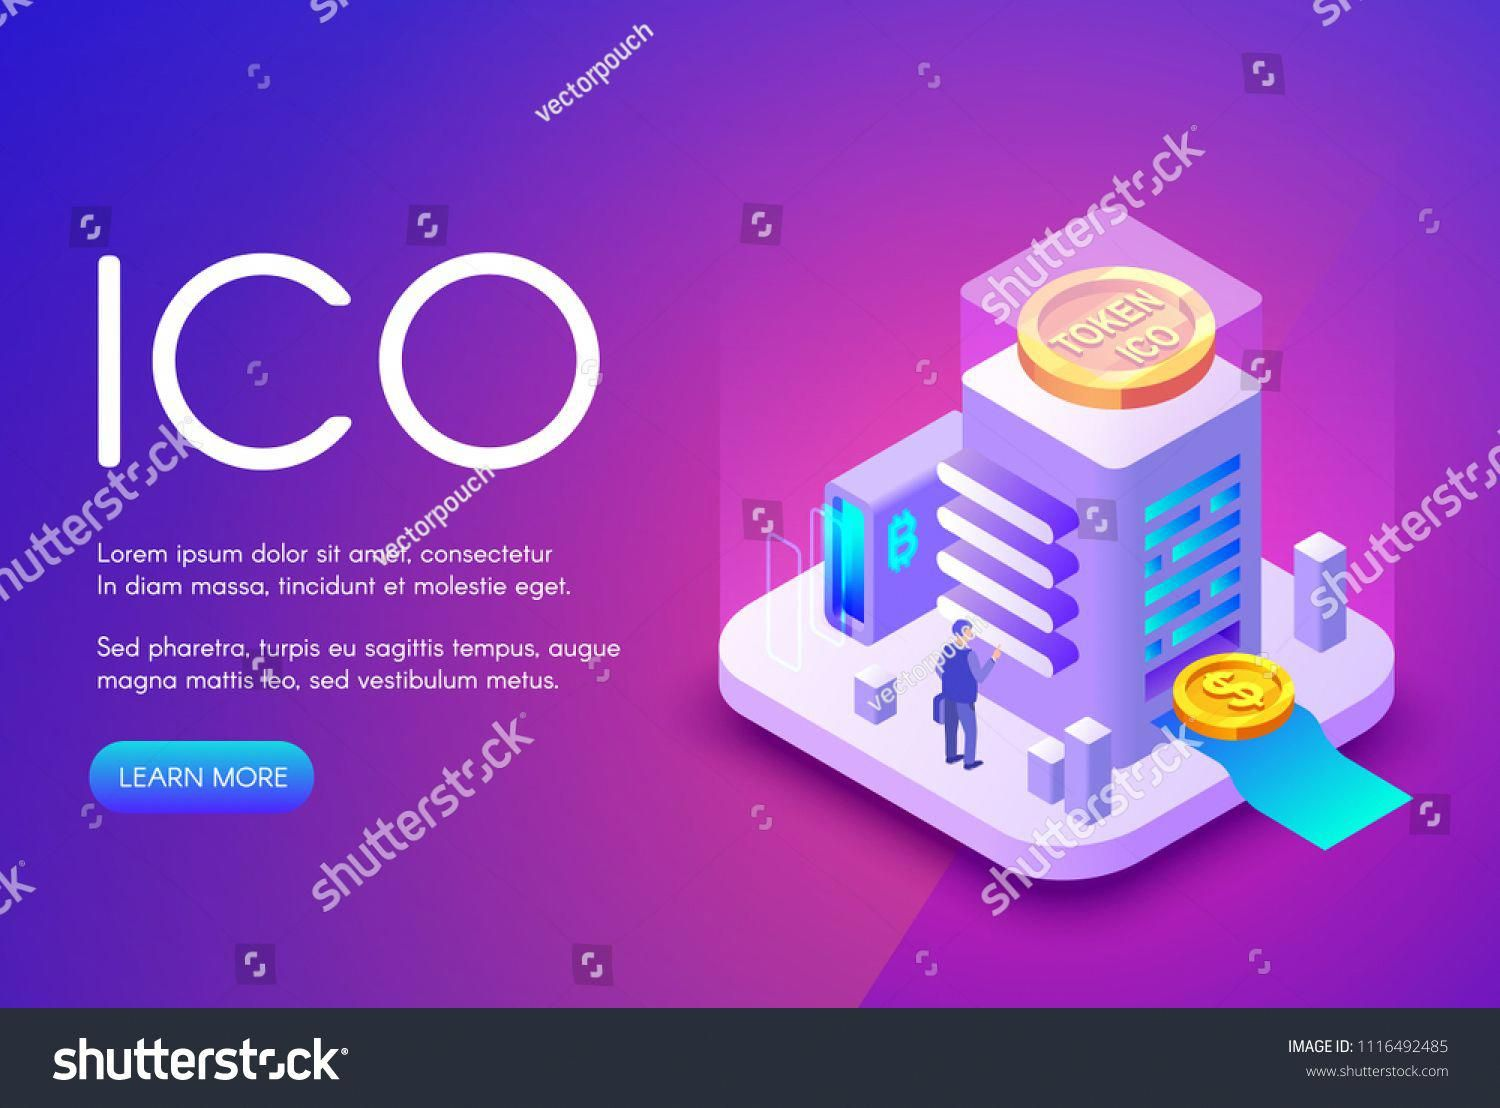 Ico Cryptocurrency Vector Illustration Of Bitcoin And Tokens For Crowdfunding Investment And Business Sta Start Up Business Business Investment Crypto Currency